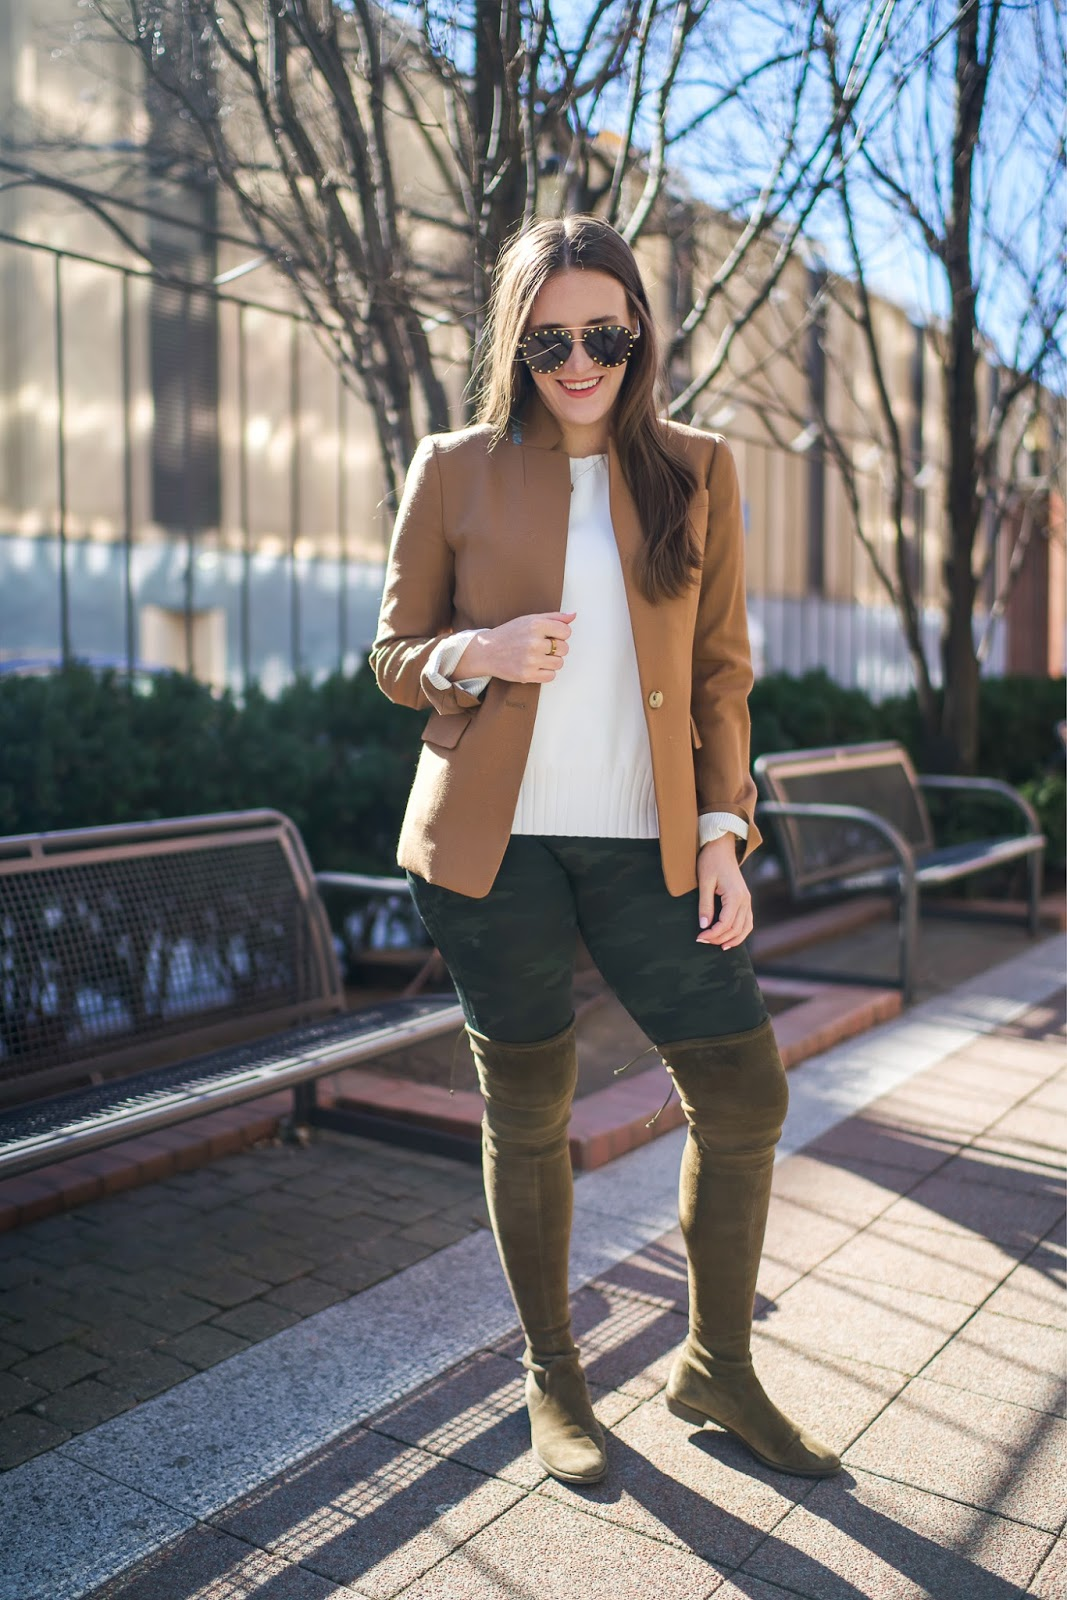 Camo Print Leggings by popular New York style blogger Covering the Bases